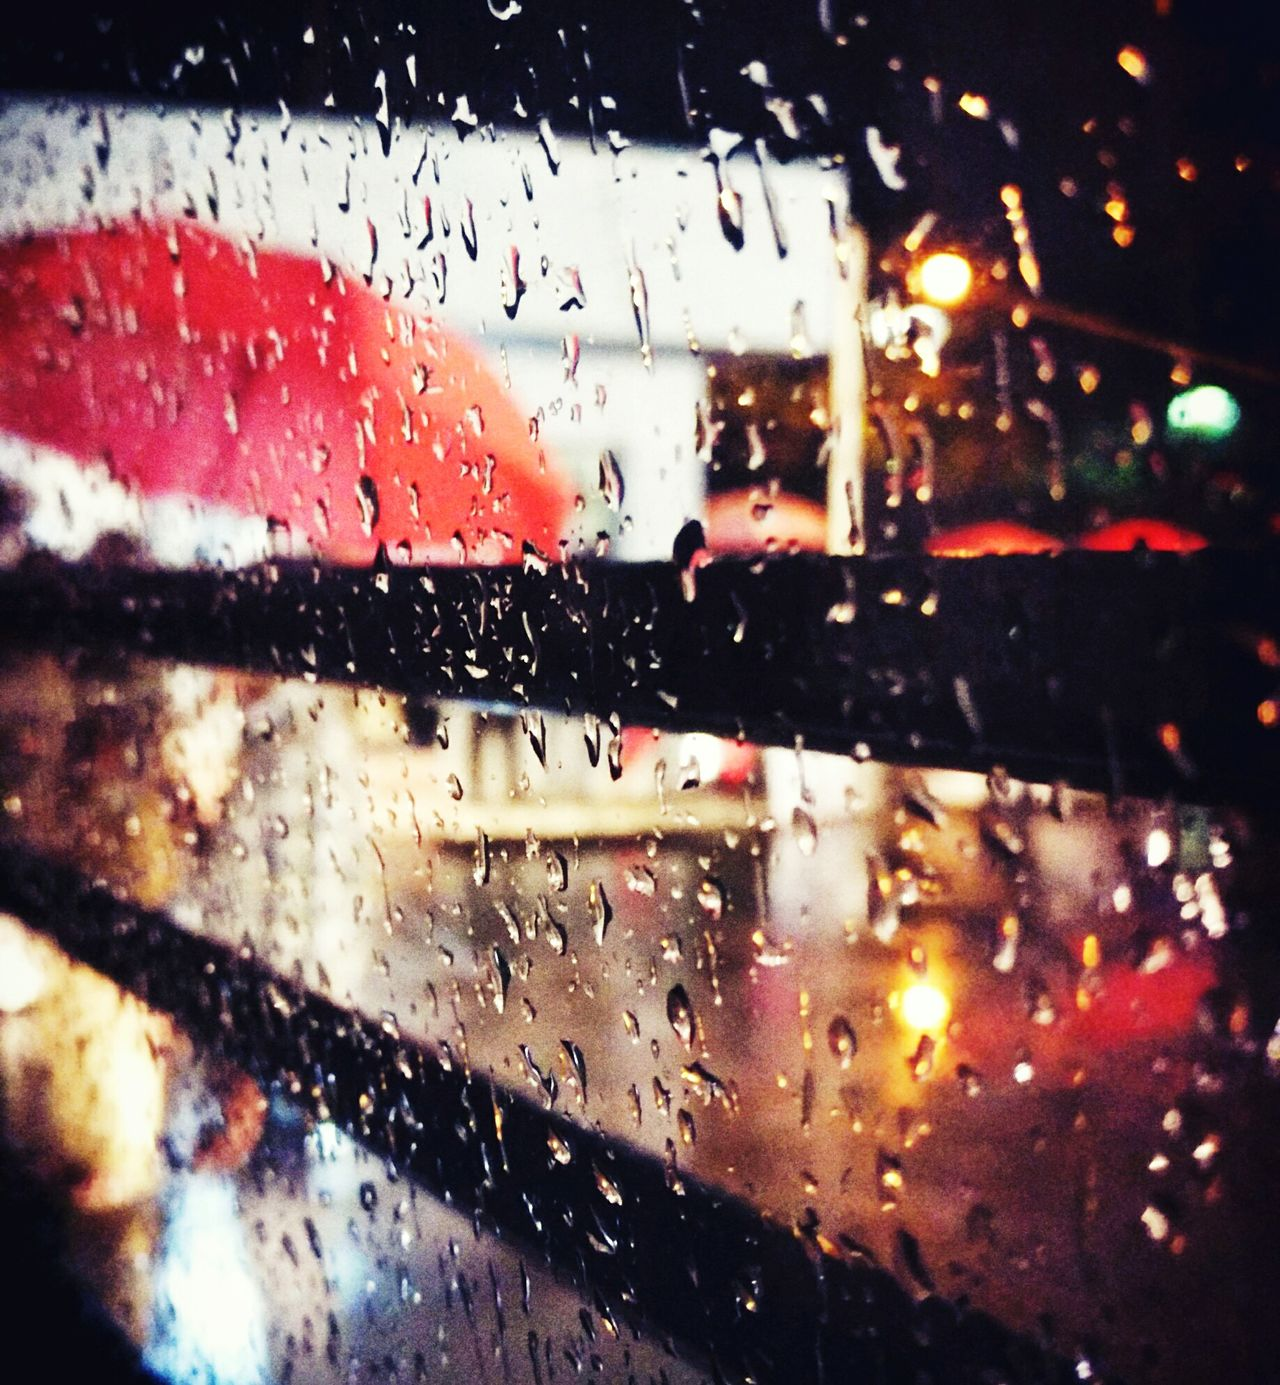 Rain and the red umbrella Rain Umbrella Red Redumbrella Raindrops Glass